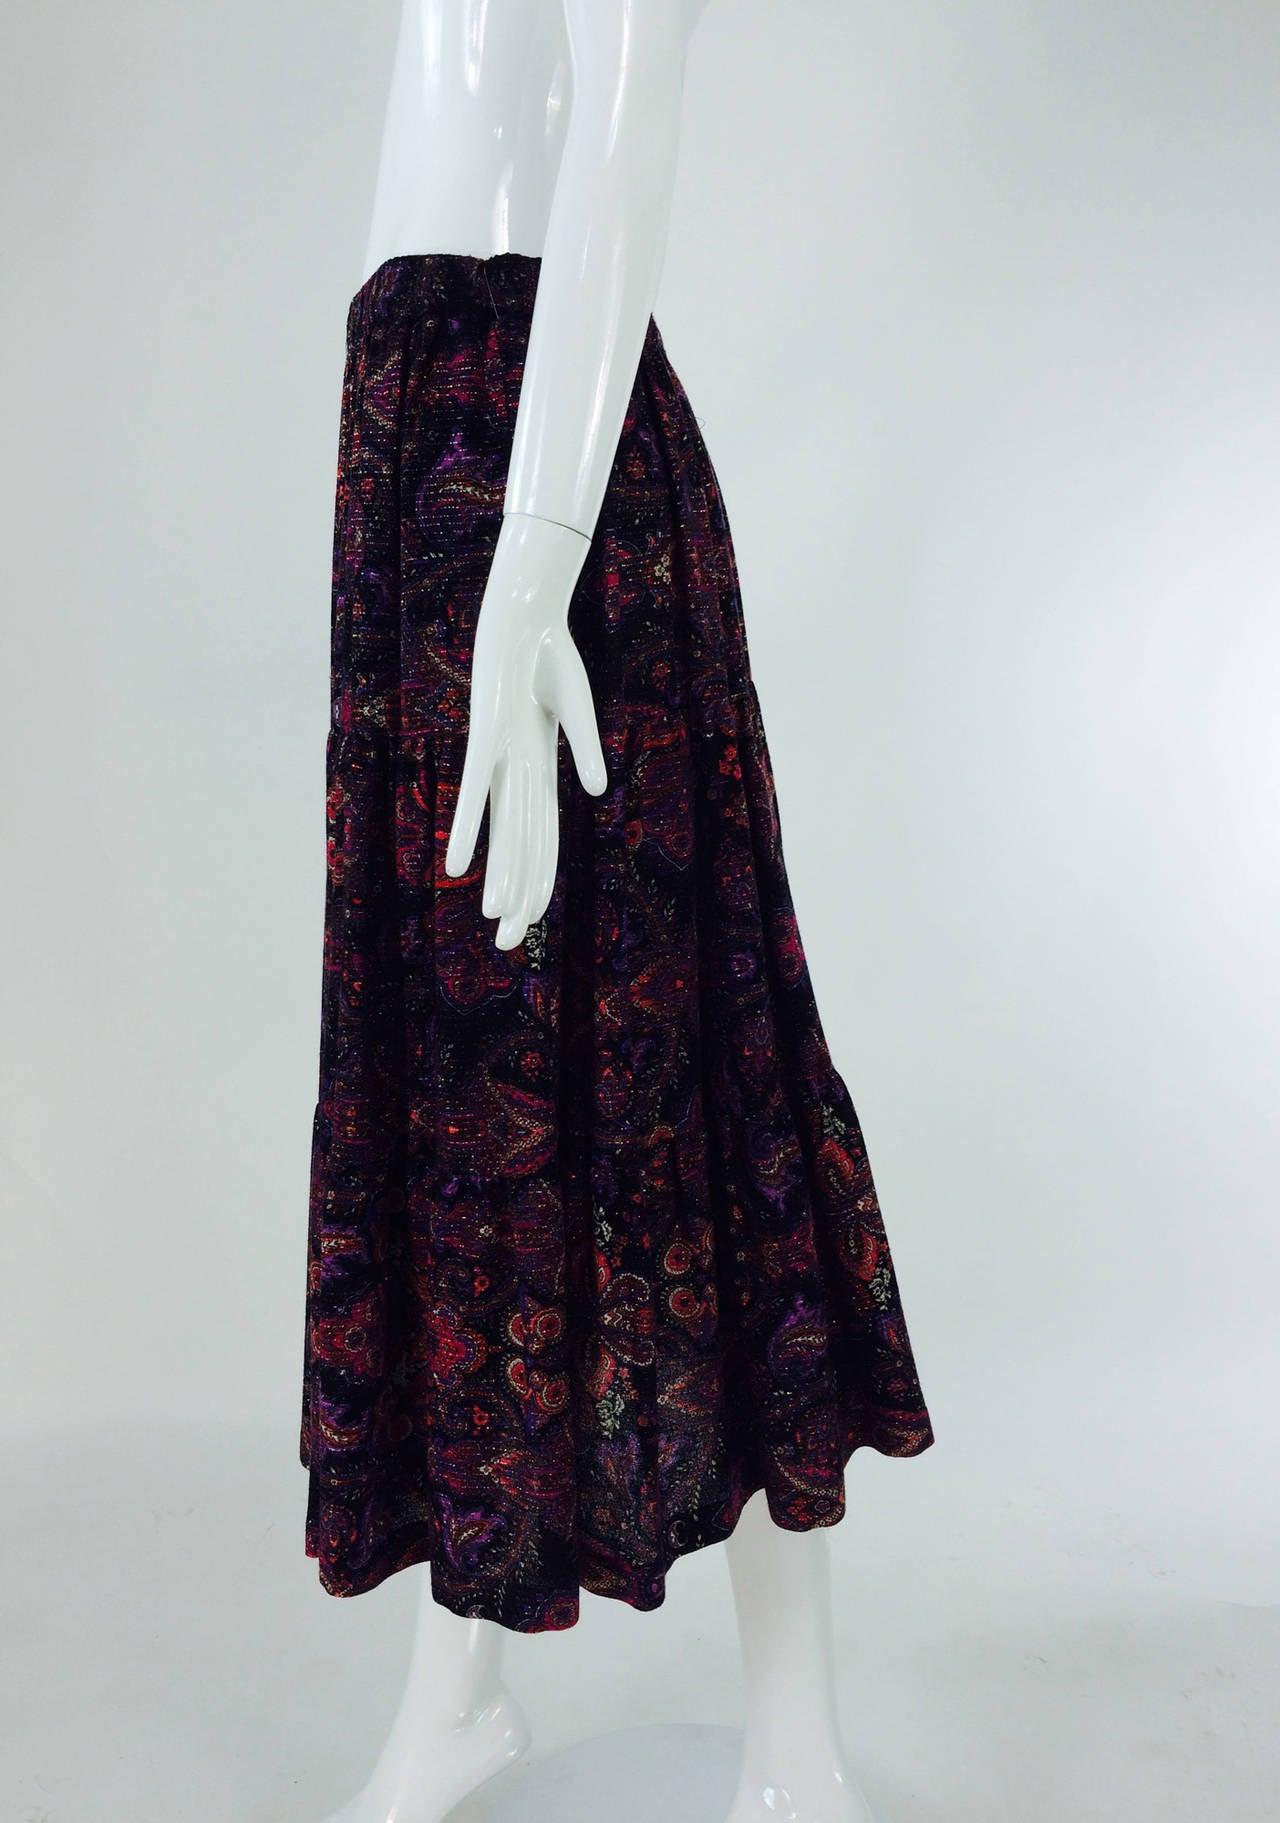 Yves St Laurent YSL Rive Gauche metallic paisley tiered gypsy skirt 1970s For Sale 1